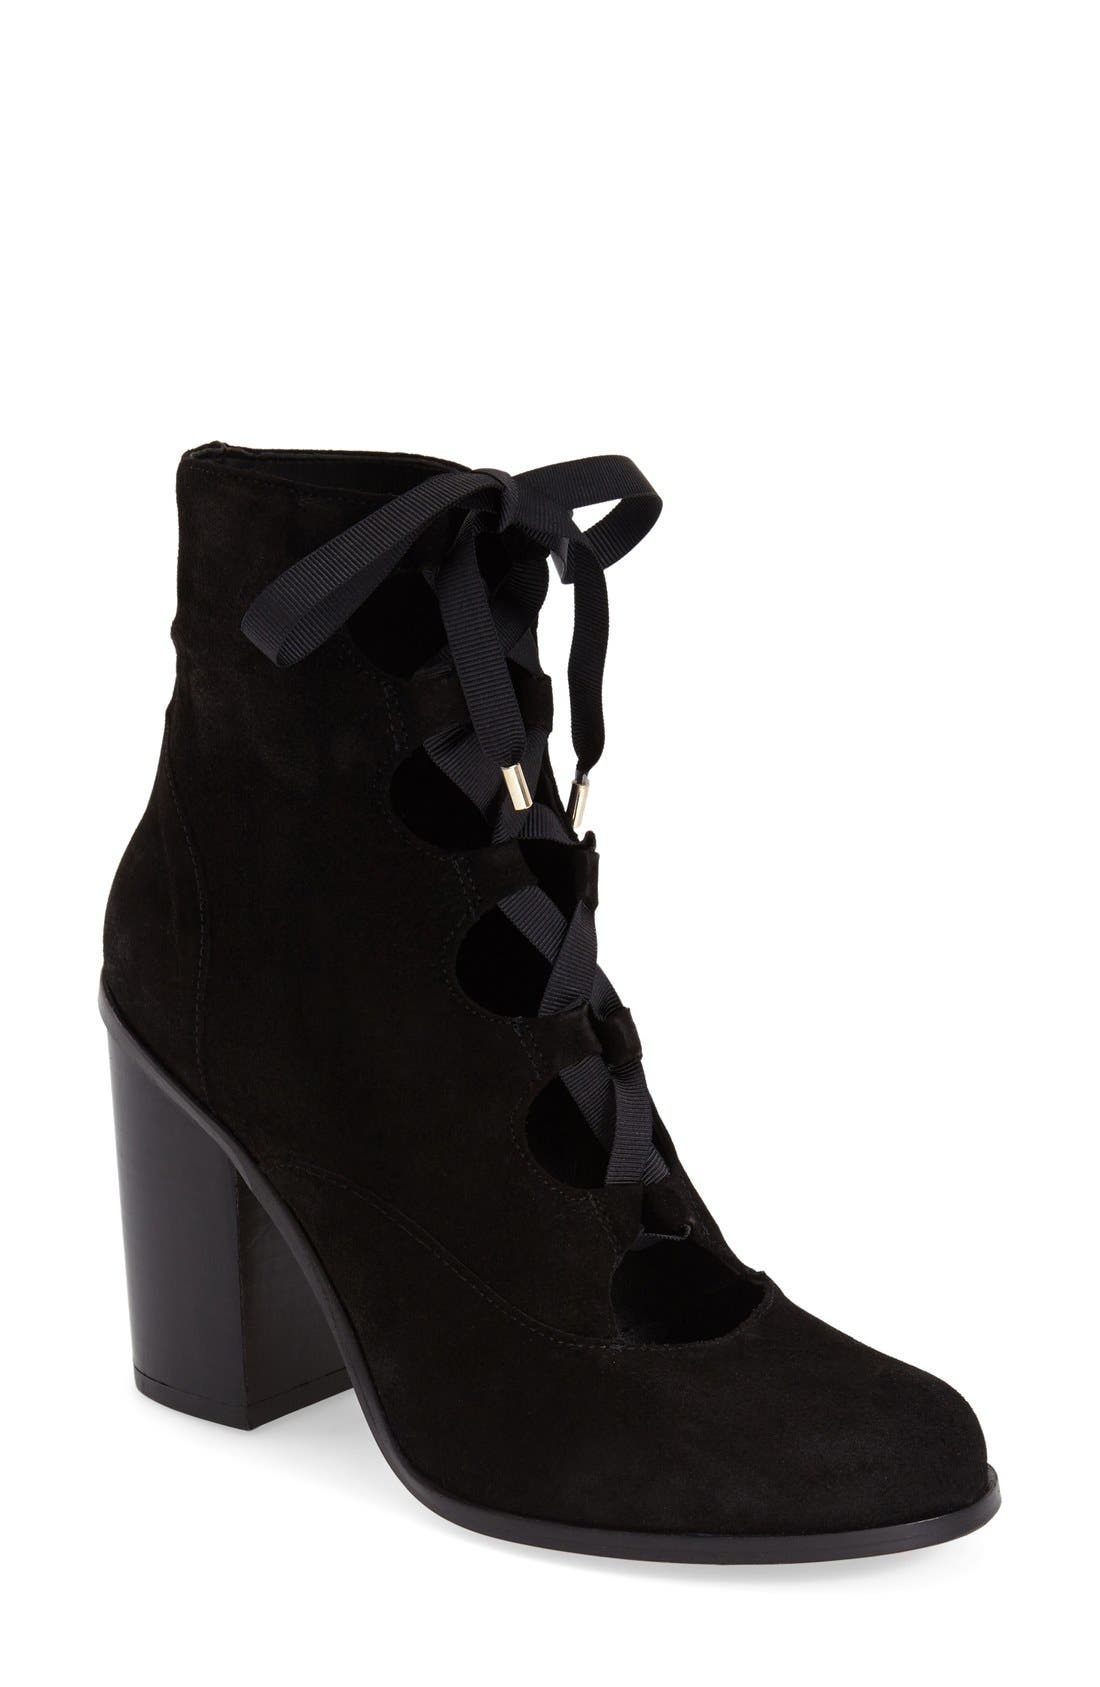 Alternate Image 1 Selected - Topshop 'Magpie' Ghillie Boot (Women)